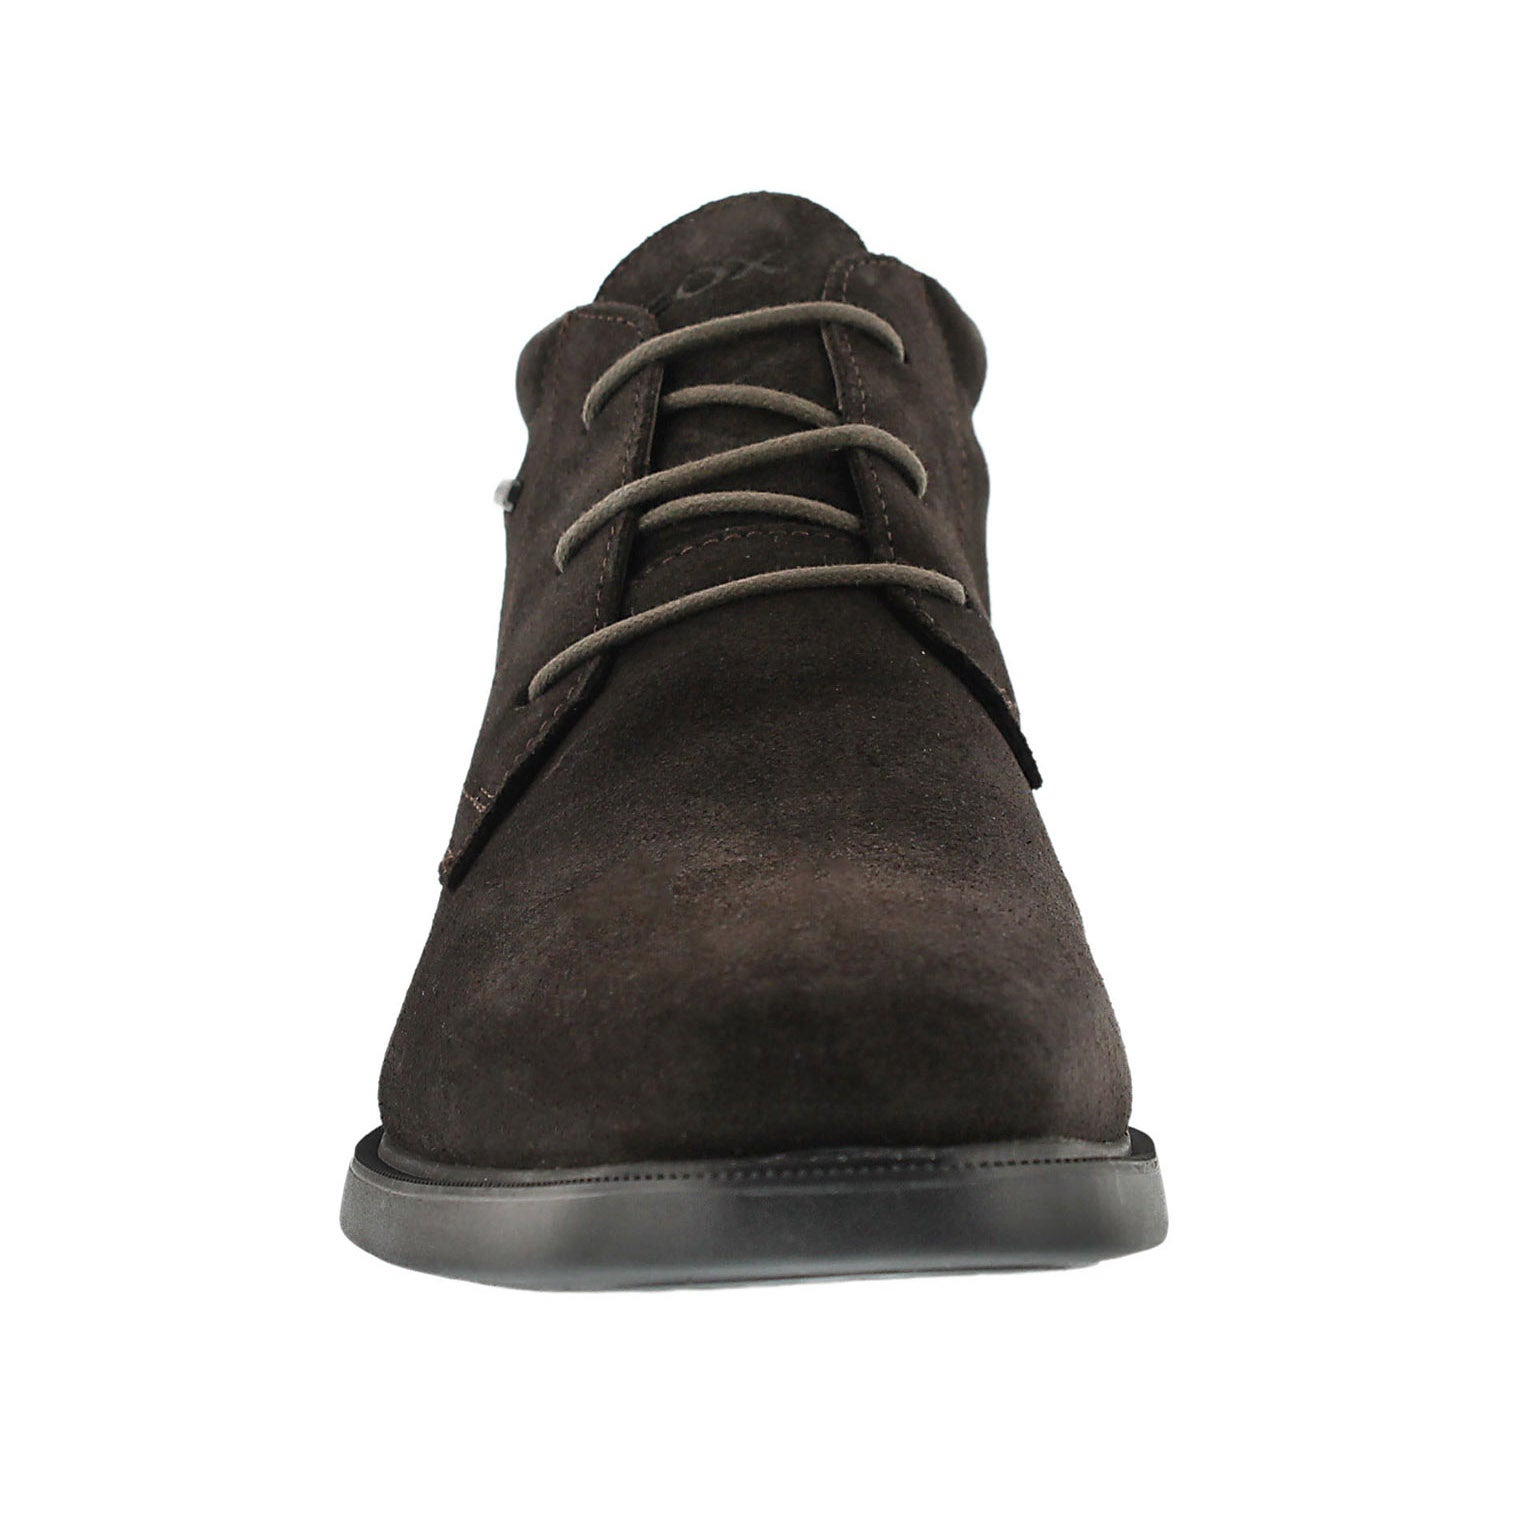 Mns Brayden 2Fit ABX coffee chukka boot